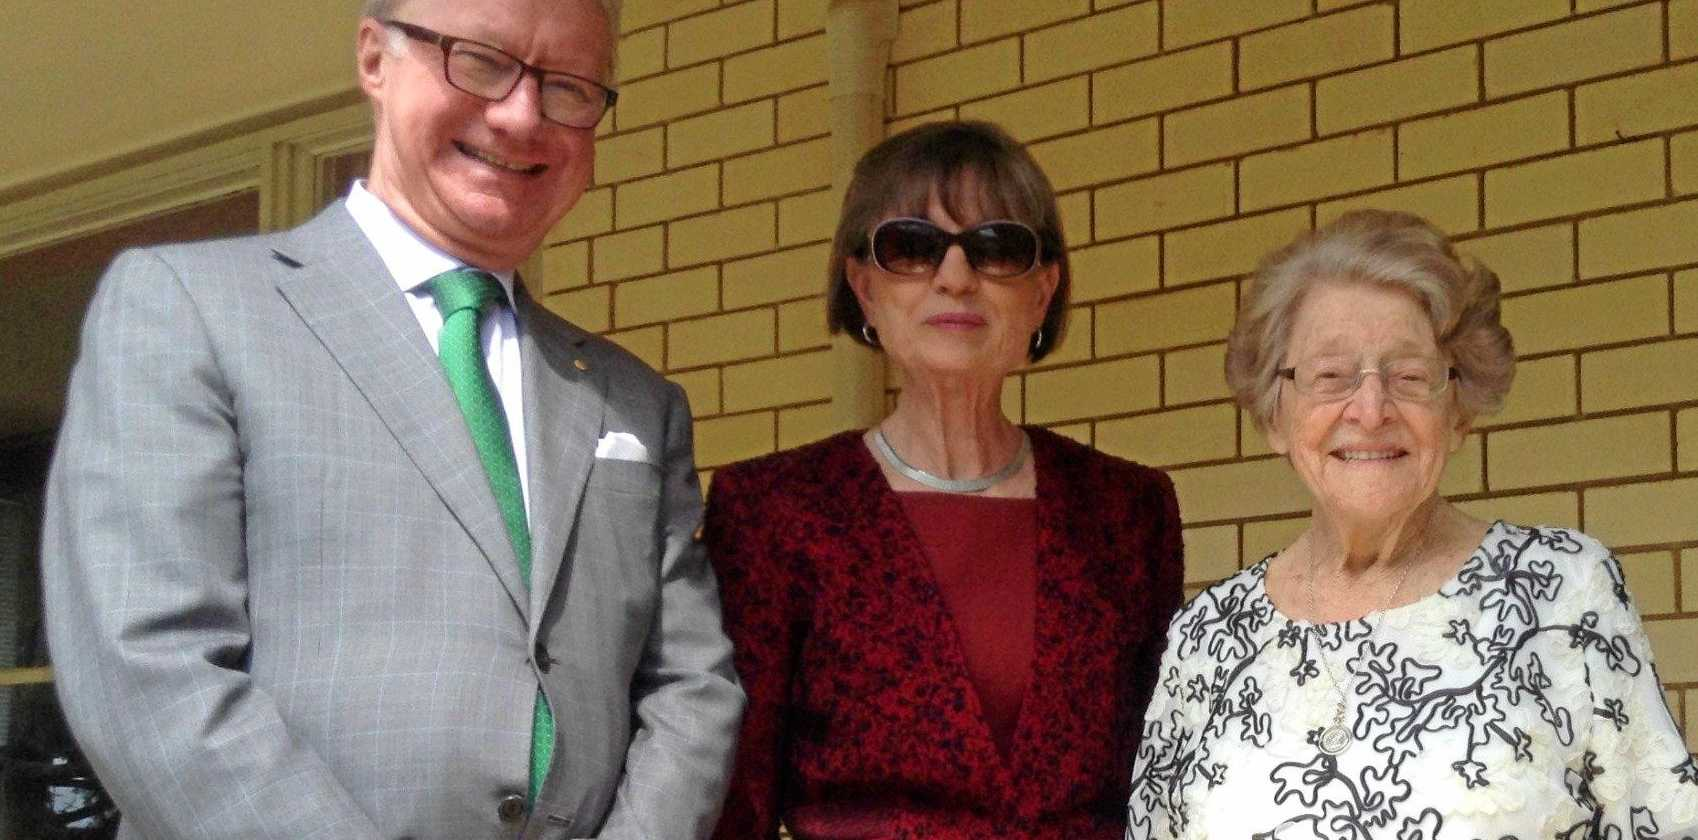 HONOURABLE VISIT: Queensland Governor Paul de Jersey and his wife with Gladys Gerchow.